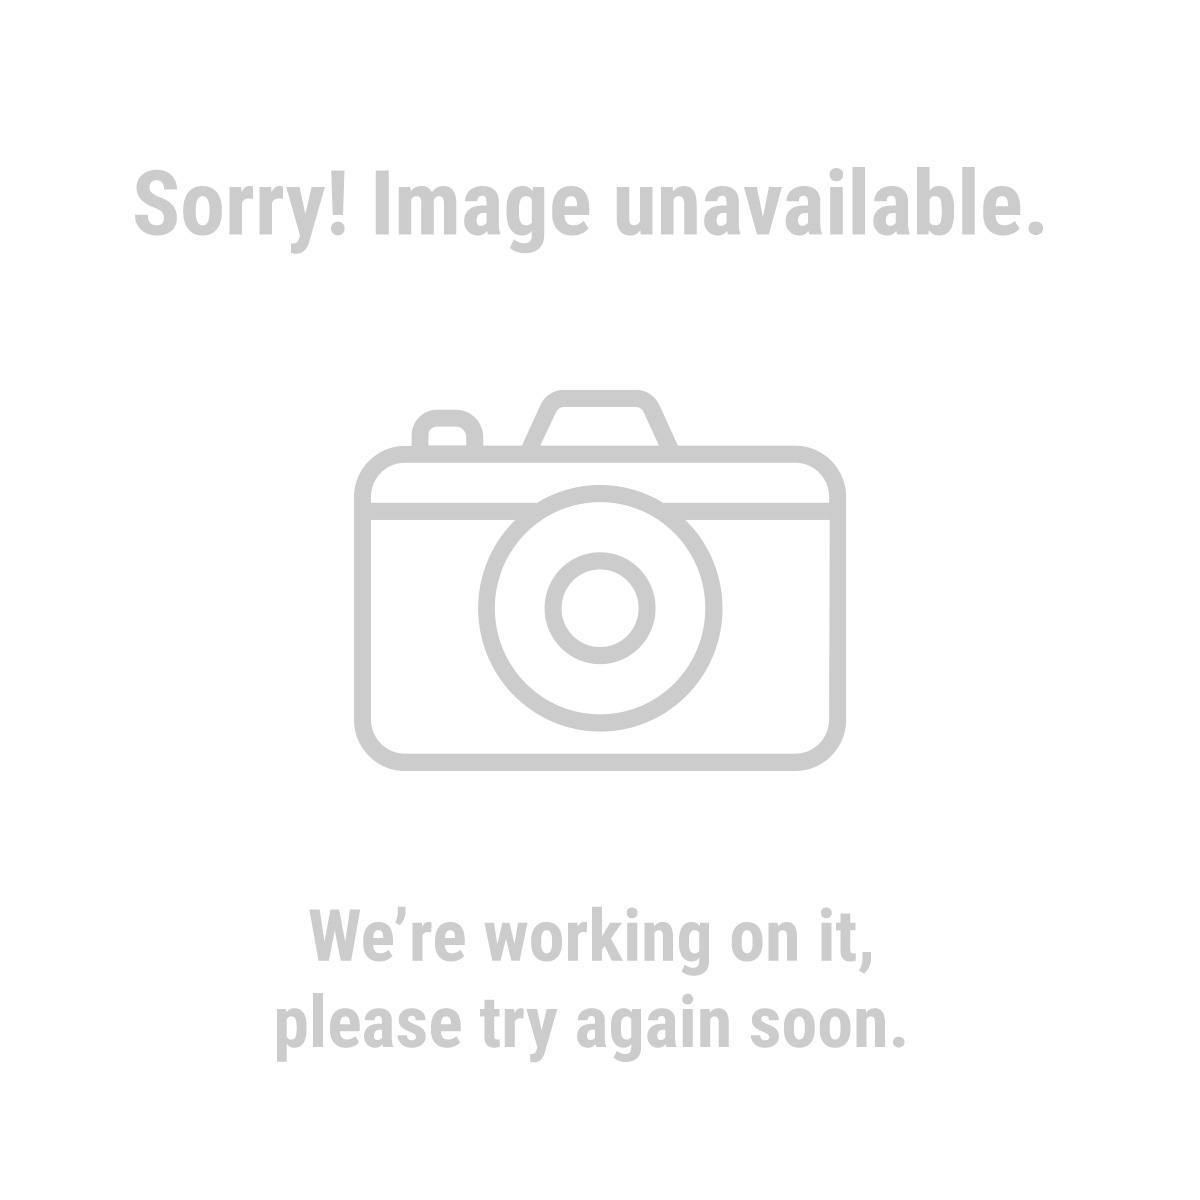 Storehouse 67598 42 Piece Marine Heat Shrink Tubing